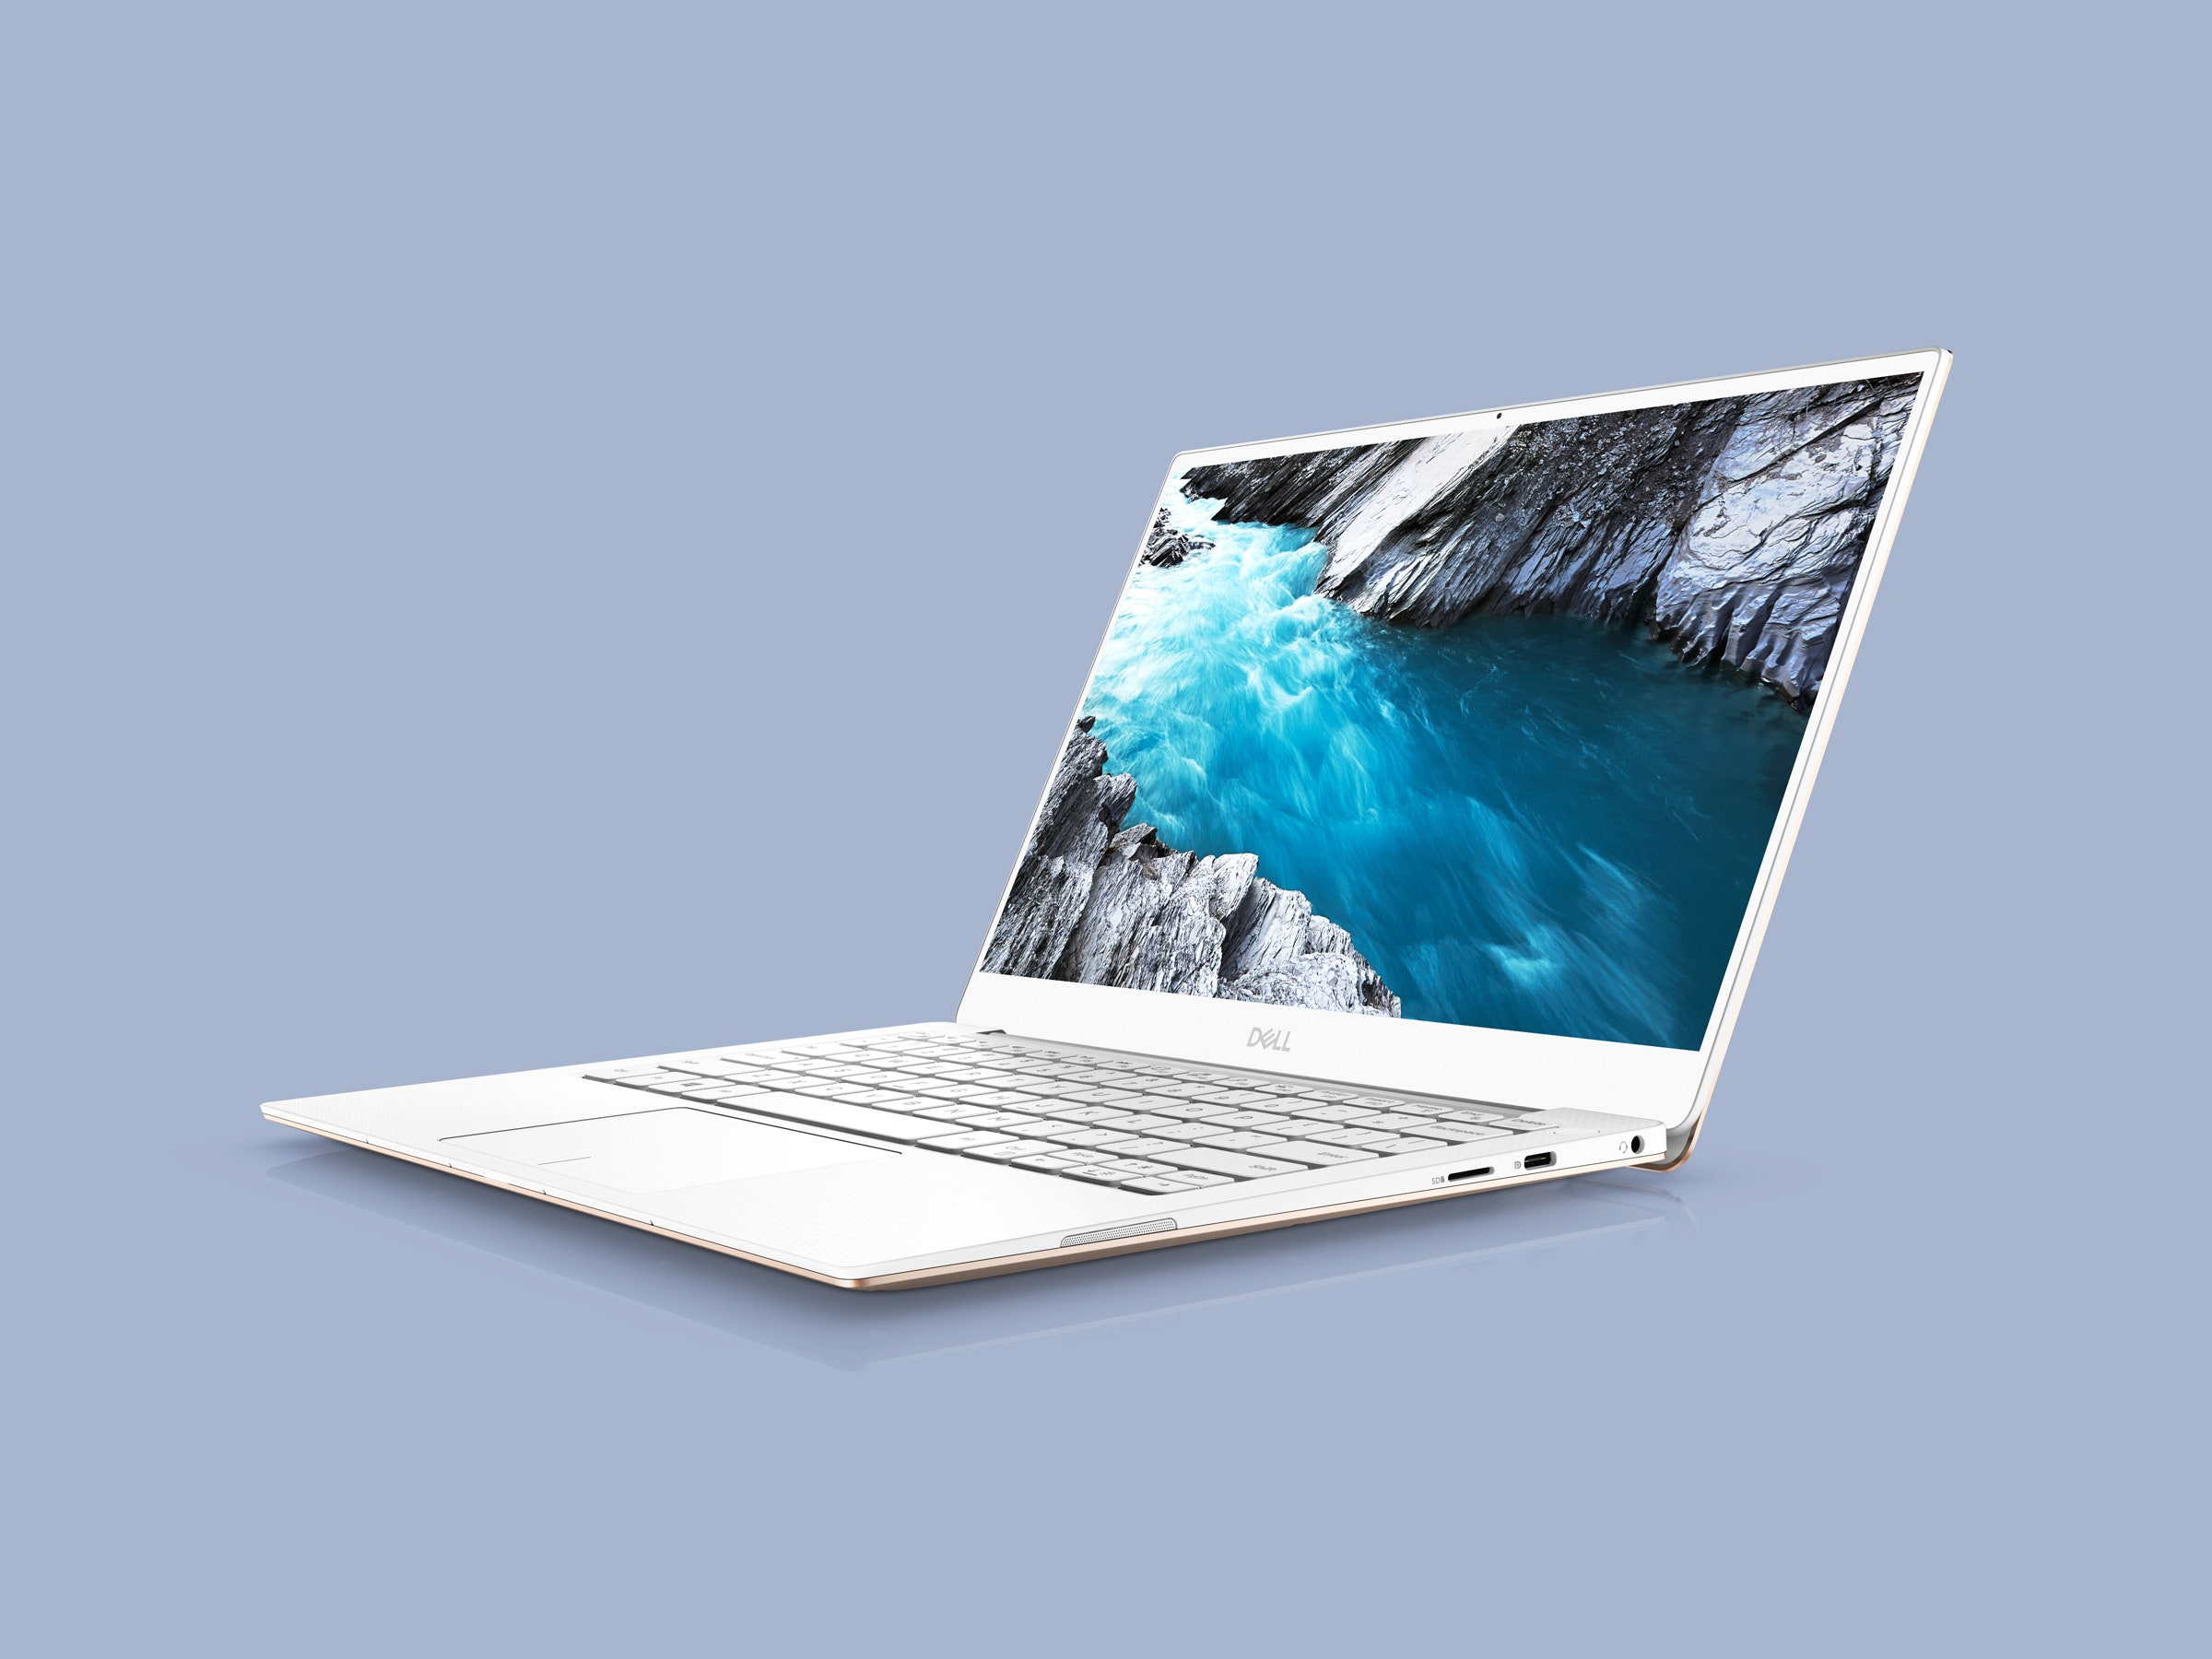 Best Laptop for Gaming And College